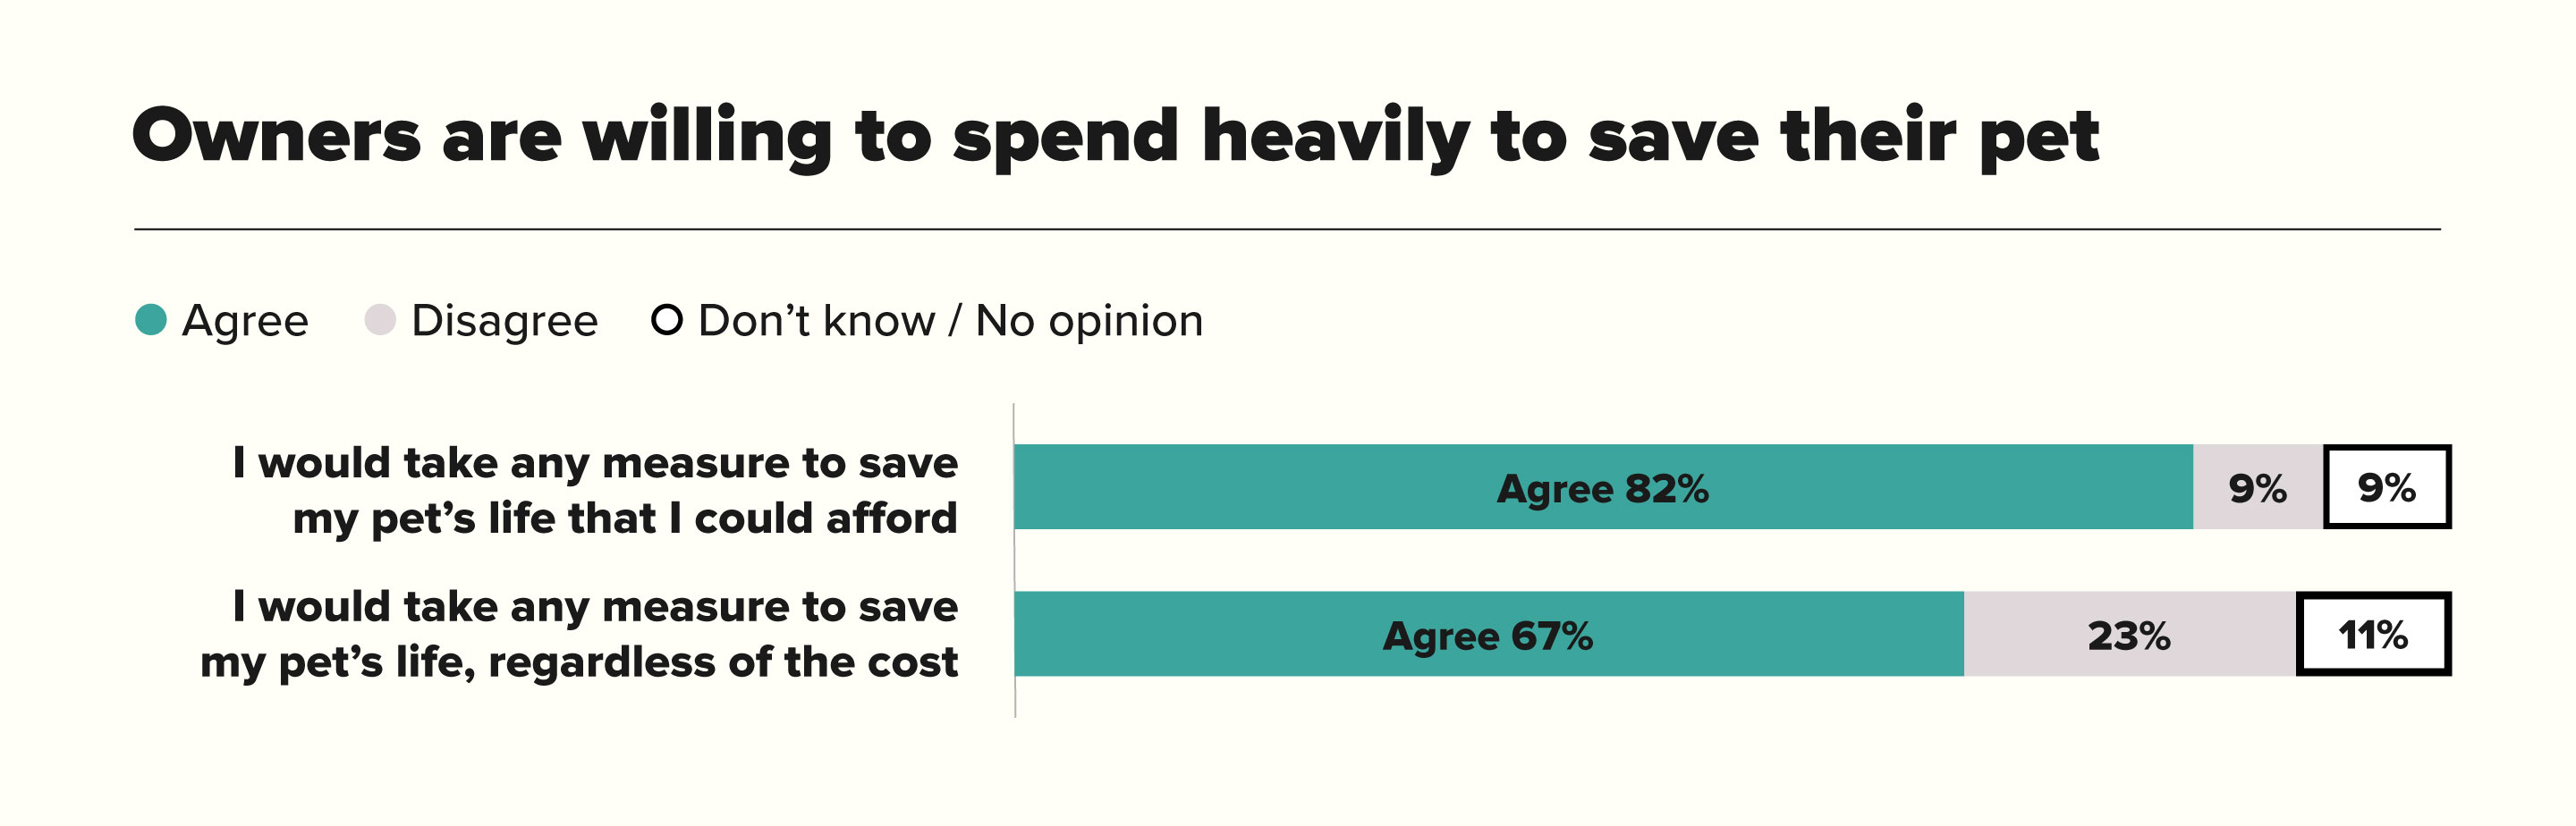 Owners Are Willing To Spend Heavily To Save-Their Pet Chart